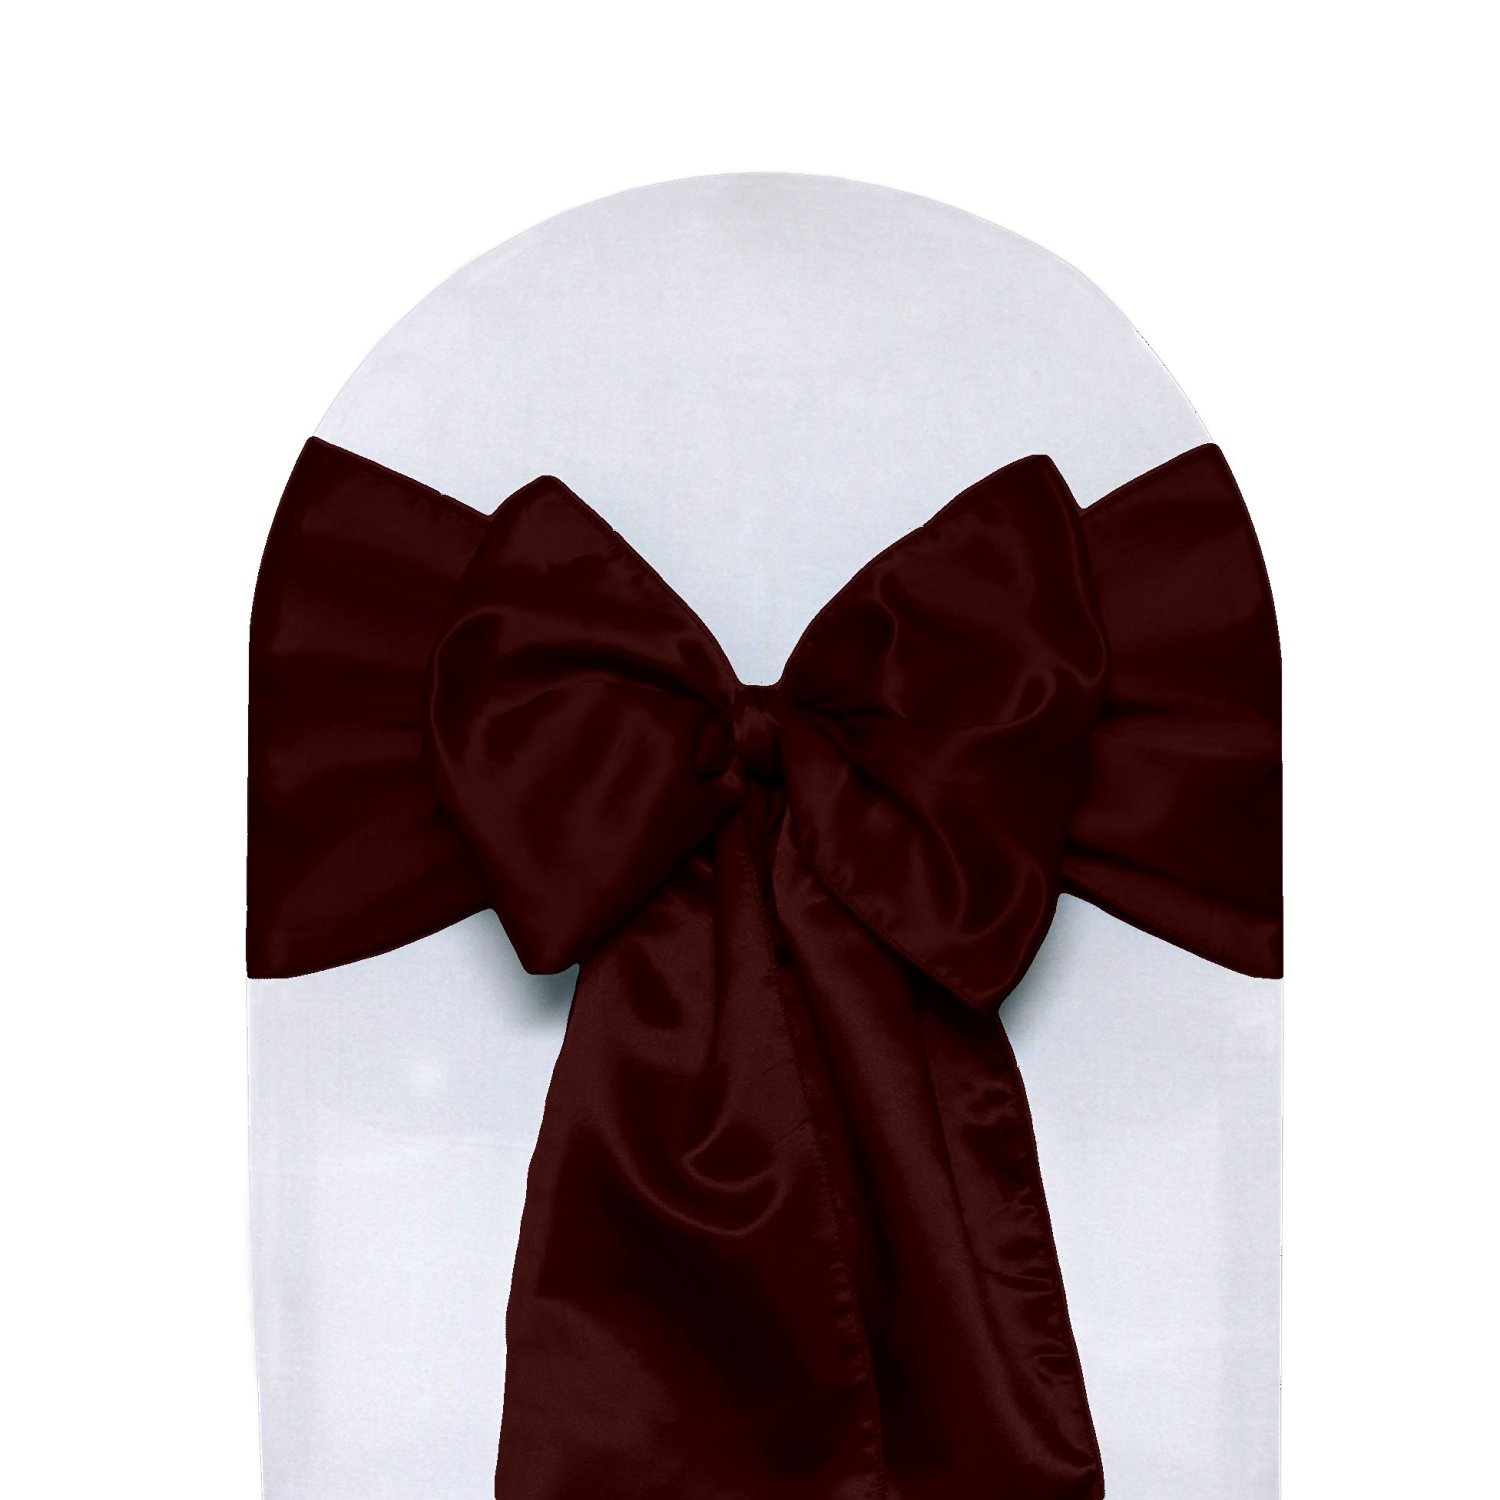 Astonishing Cheap Burgundy Chair Covers Find Burgundy Chair Covers Beatyapartments Chair Design Images Beatyapartmentscom